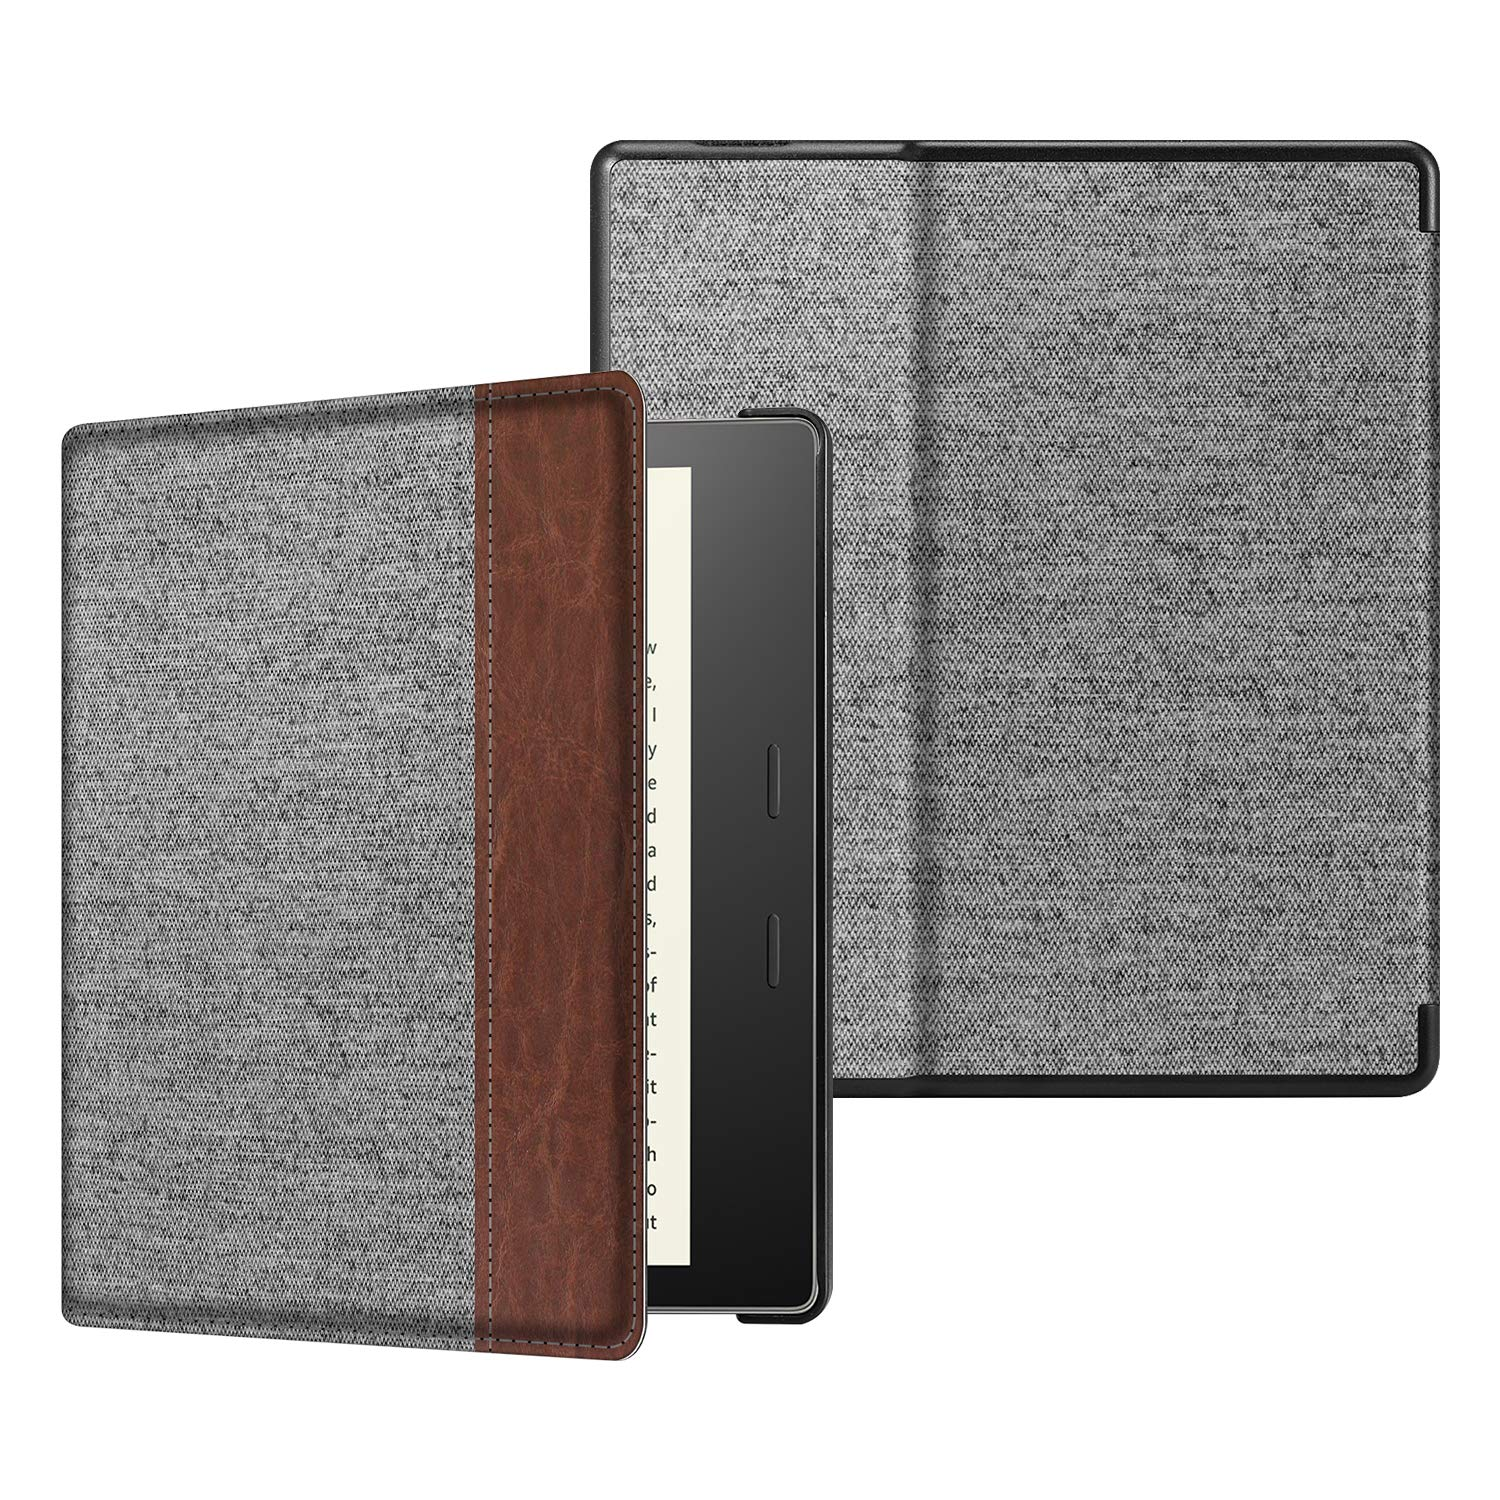 CaseBot Slimshell Case for All-New Kindle Oasis (10th Generation, 2019 Release and 9th Generation, 2017 Release) - Premium Fabric Lightweight Protective Cover with Auto Wake Sleep, Denim Gray